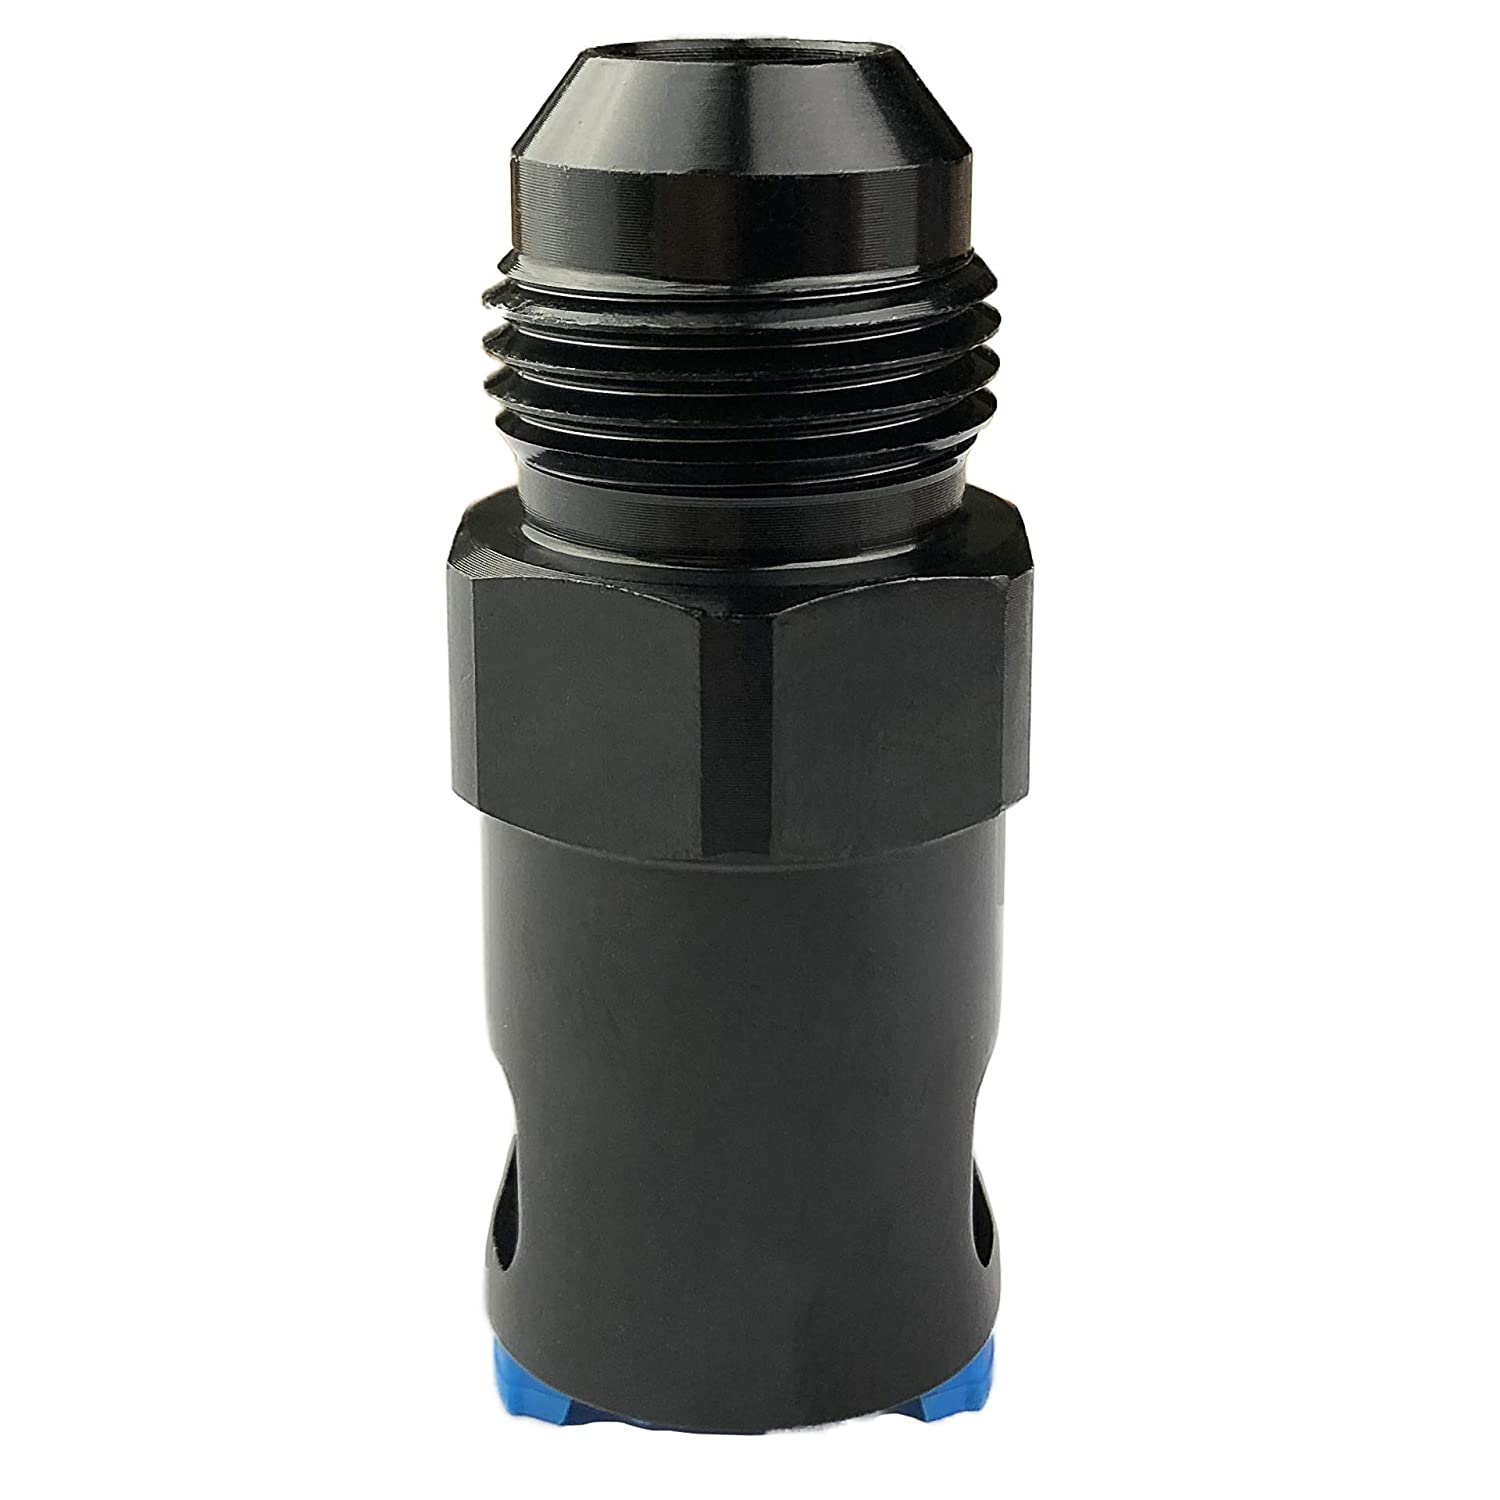 6AN Fuel Cell Bulkhead Fitting Adapter Aluminum AN6 Locking Nut 6 AN Male Flare Thread with Teflon Washer